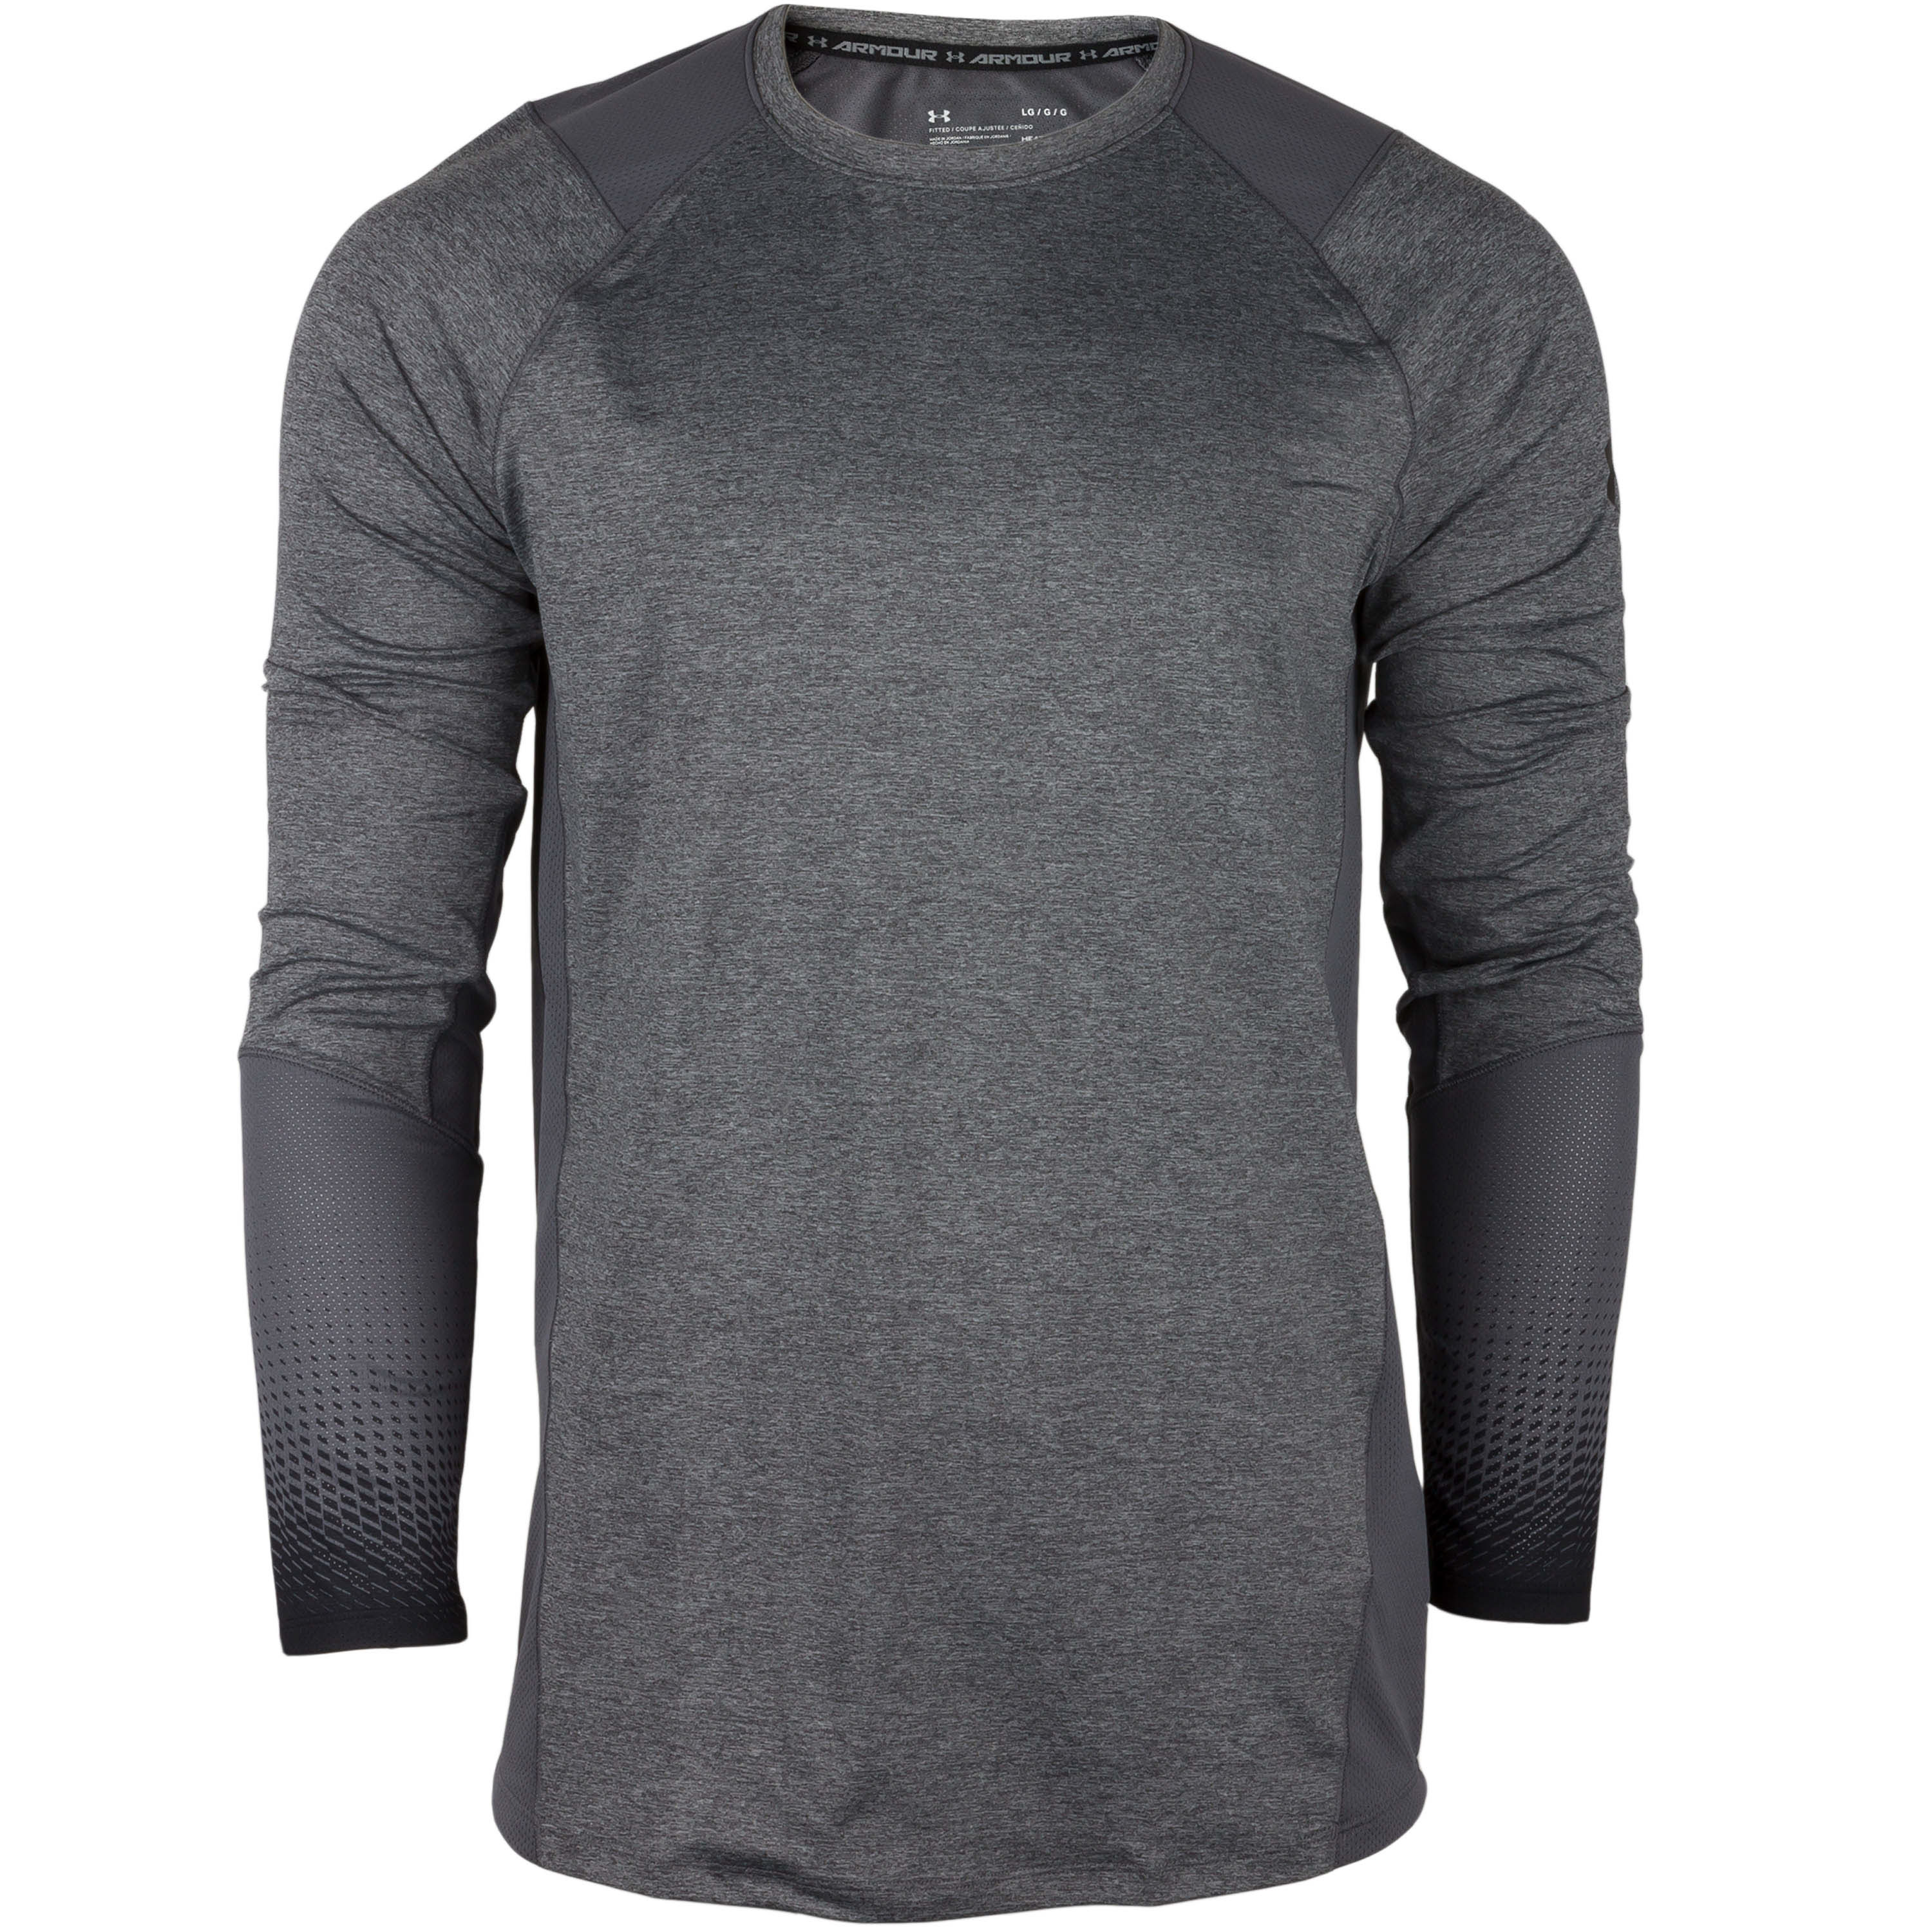 Under Armour Long Arm Shirt Raid 2.0 Graphic gray